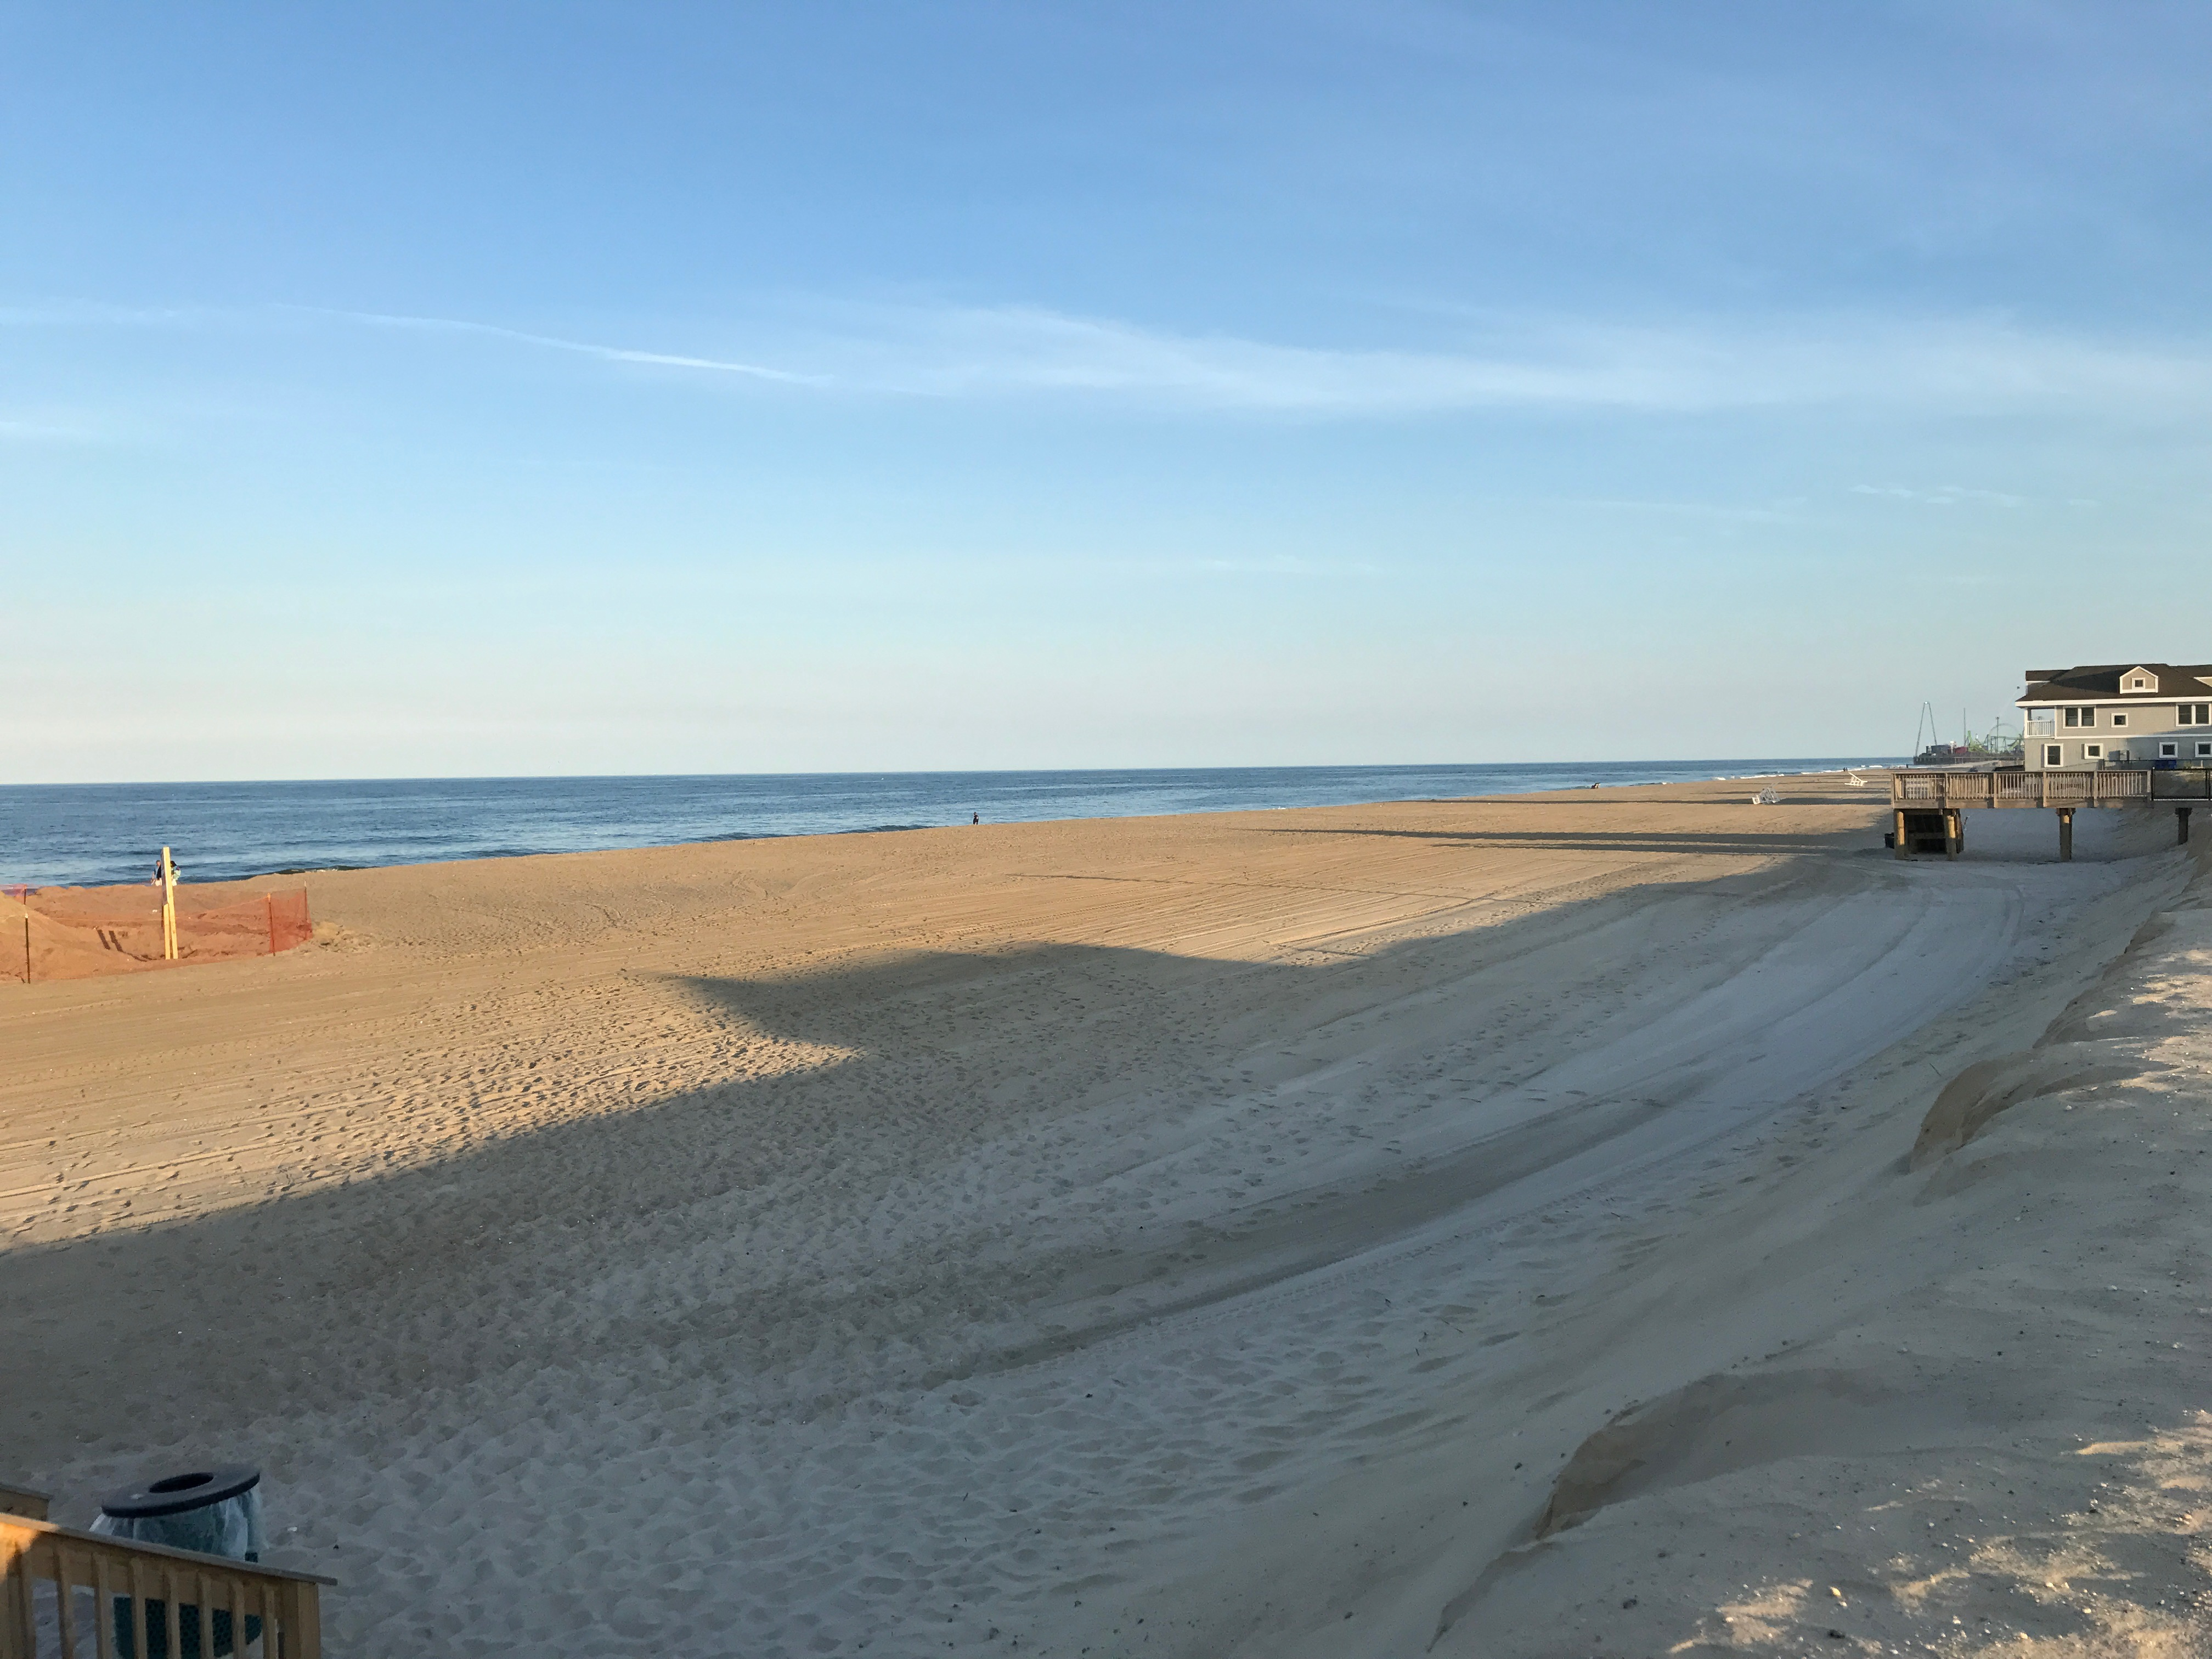 Beach Replenishment In Ortley N J As Of June 14 2017